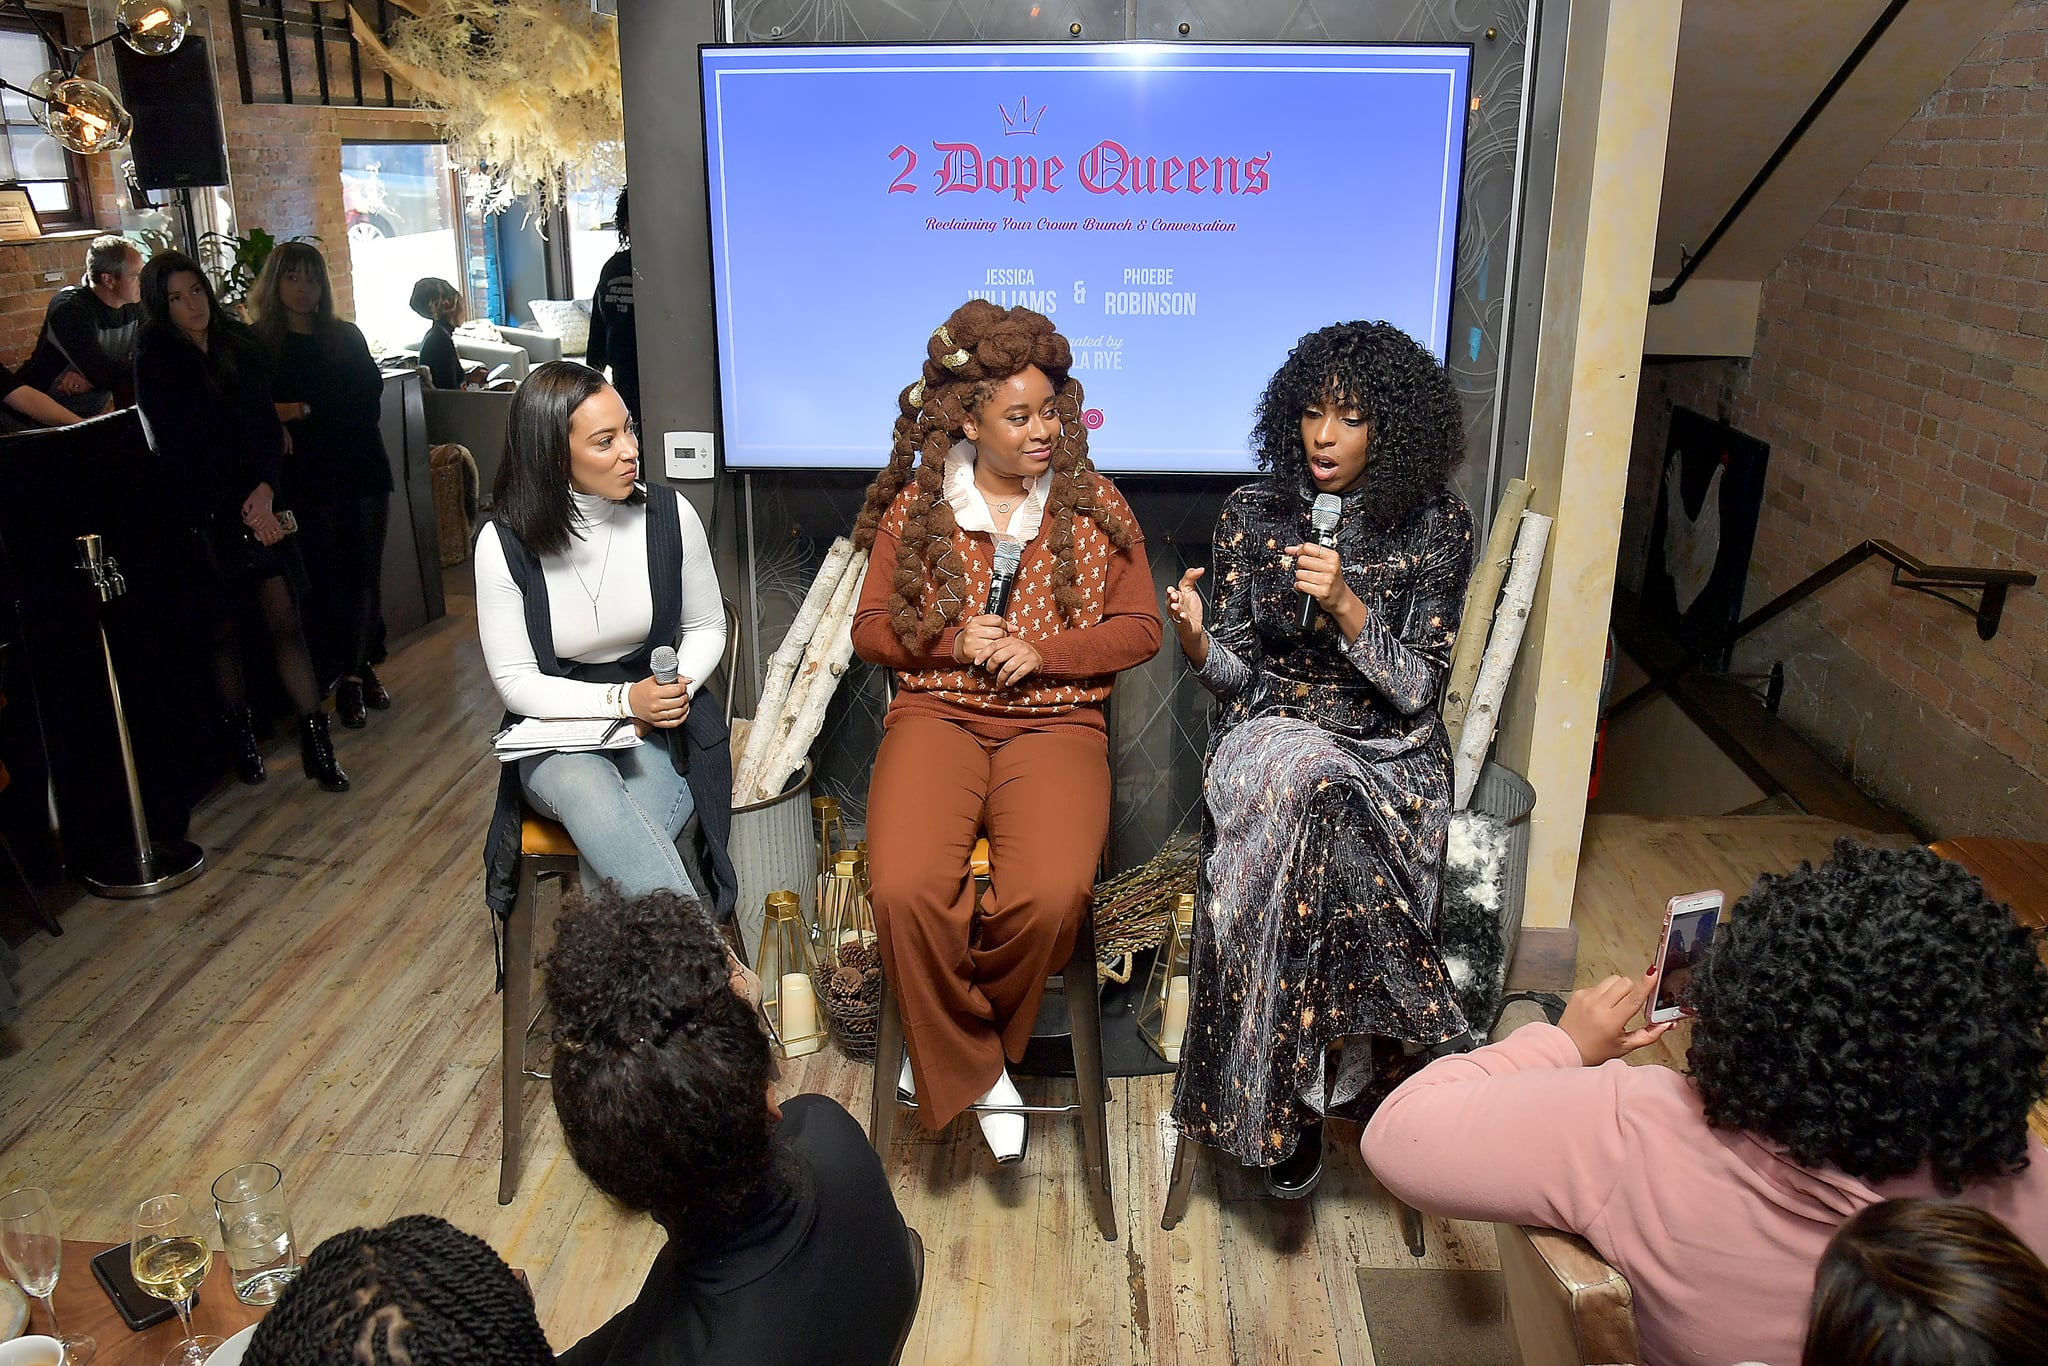 PARK CITY, UTAH - JANUARY 27: (L-R) Attorney and Principal and CEO of IMPACT Strategies Angela Rye, Jessica Williams, and Phoebe Robinson take part in the HBO